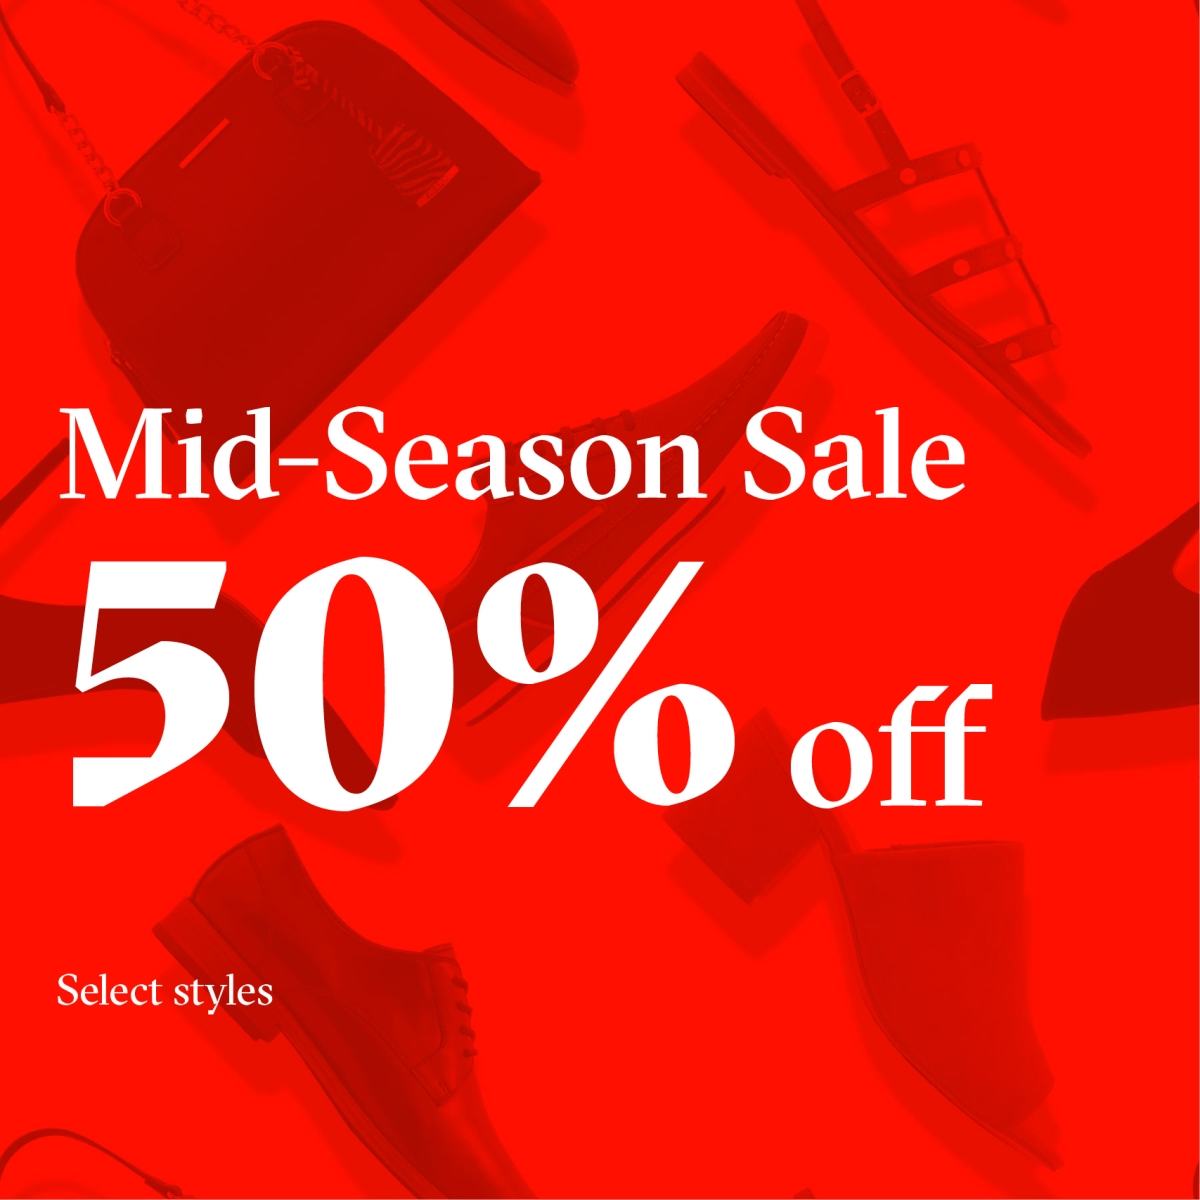 Mid-Season Sale! from ALDO